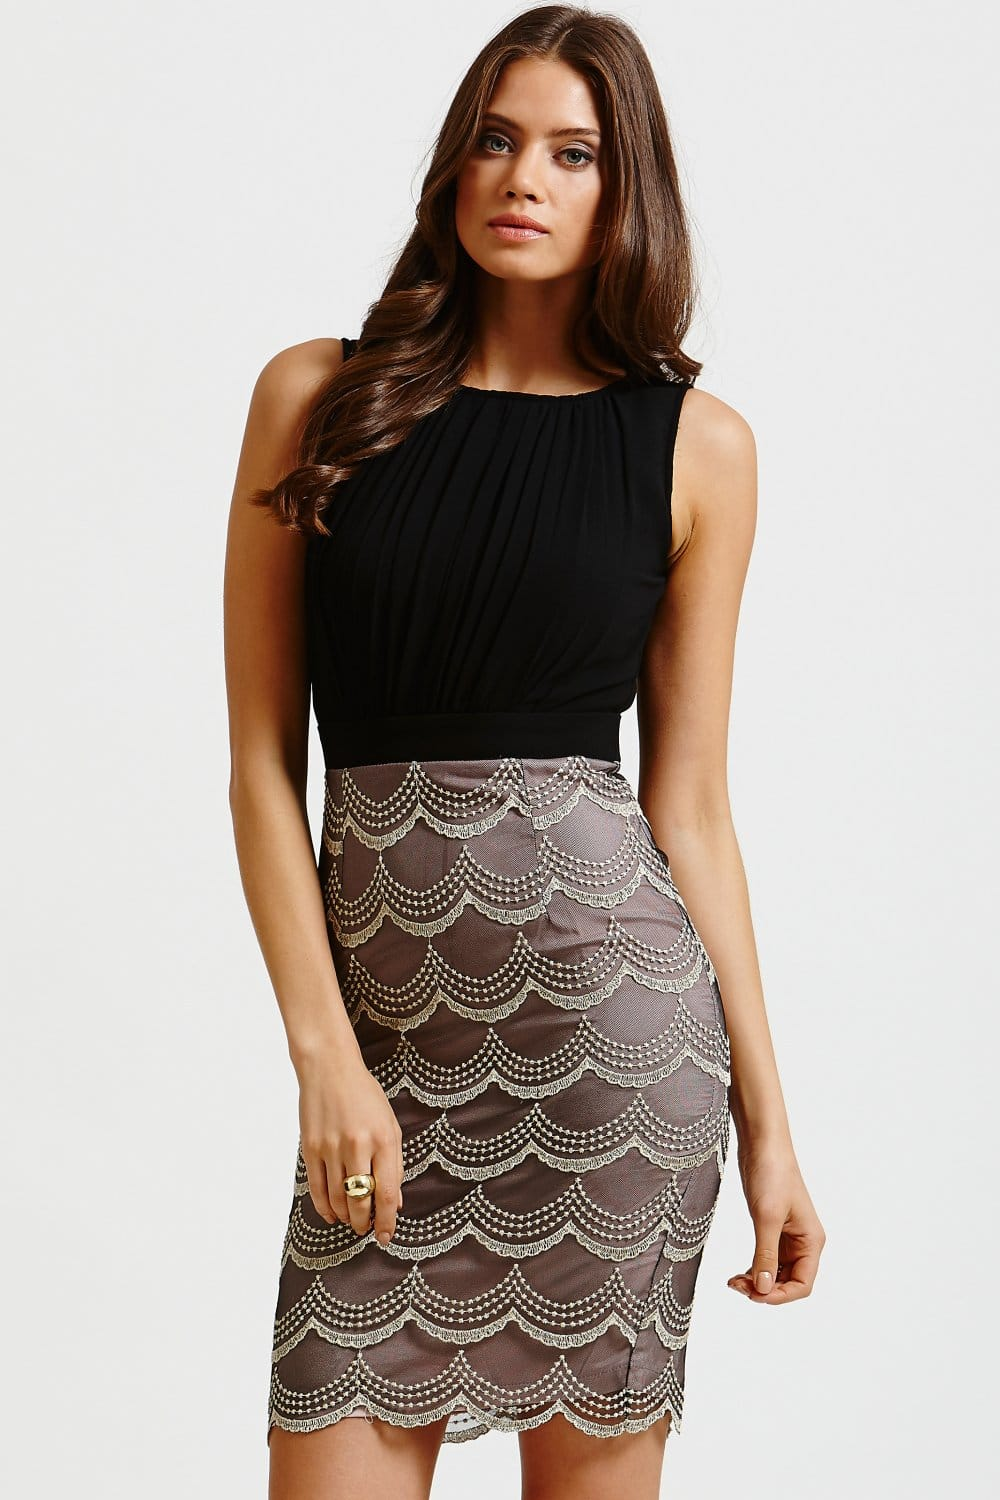 Little Mistress Black and Gold Scalloped Skirt Dress - Little ...